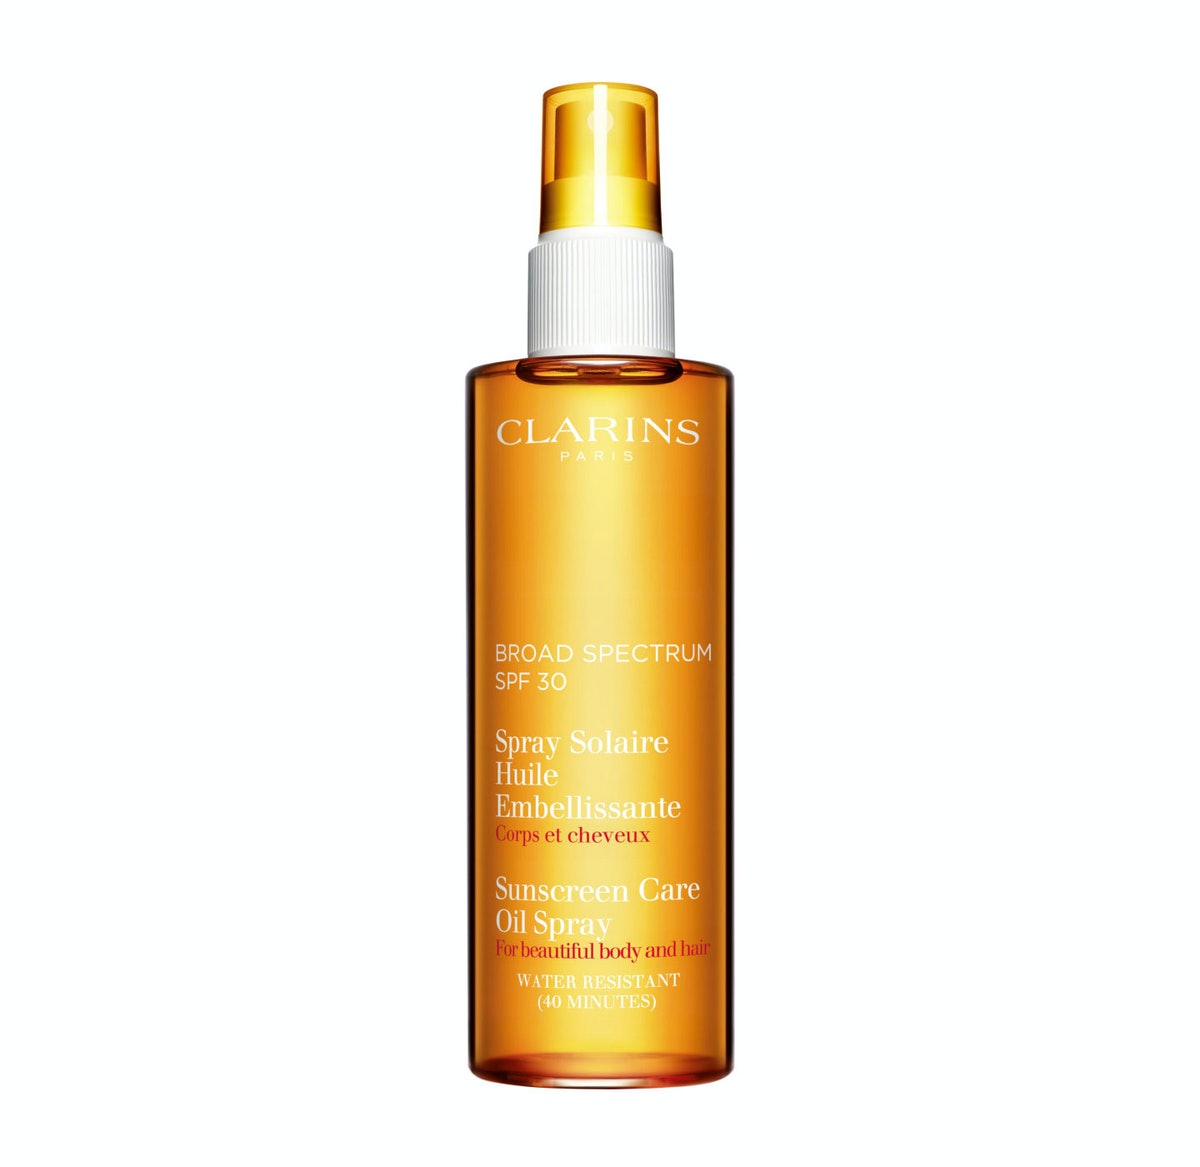 Clarins Sunscreen Spray Oil-Free Lotion